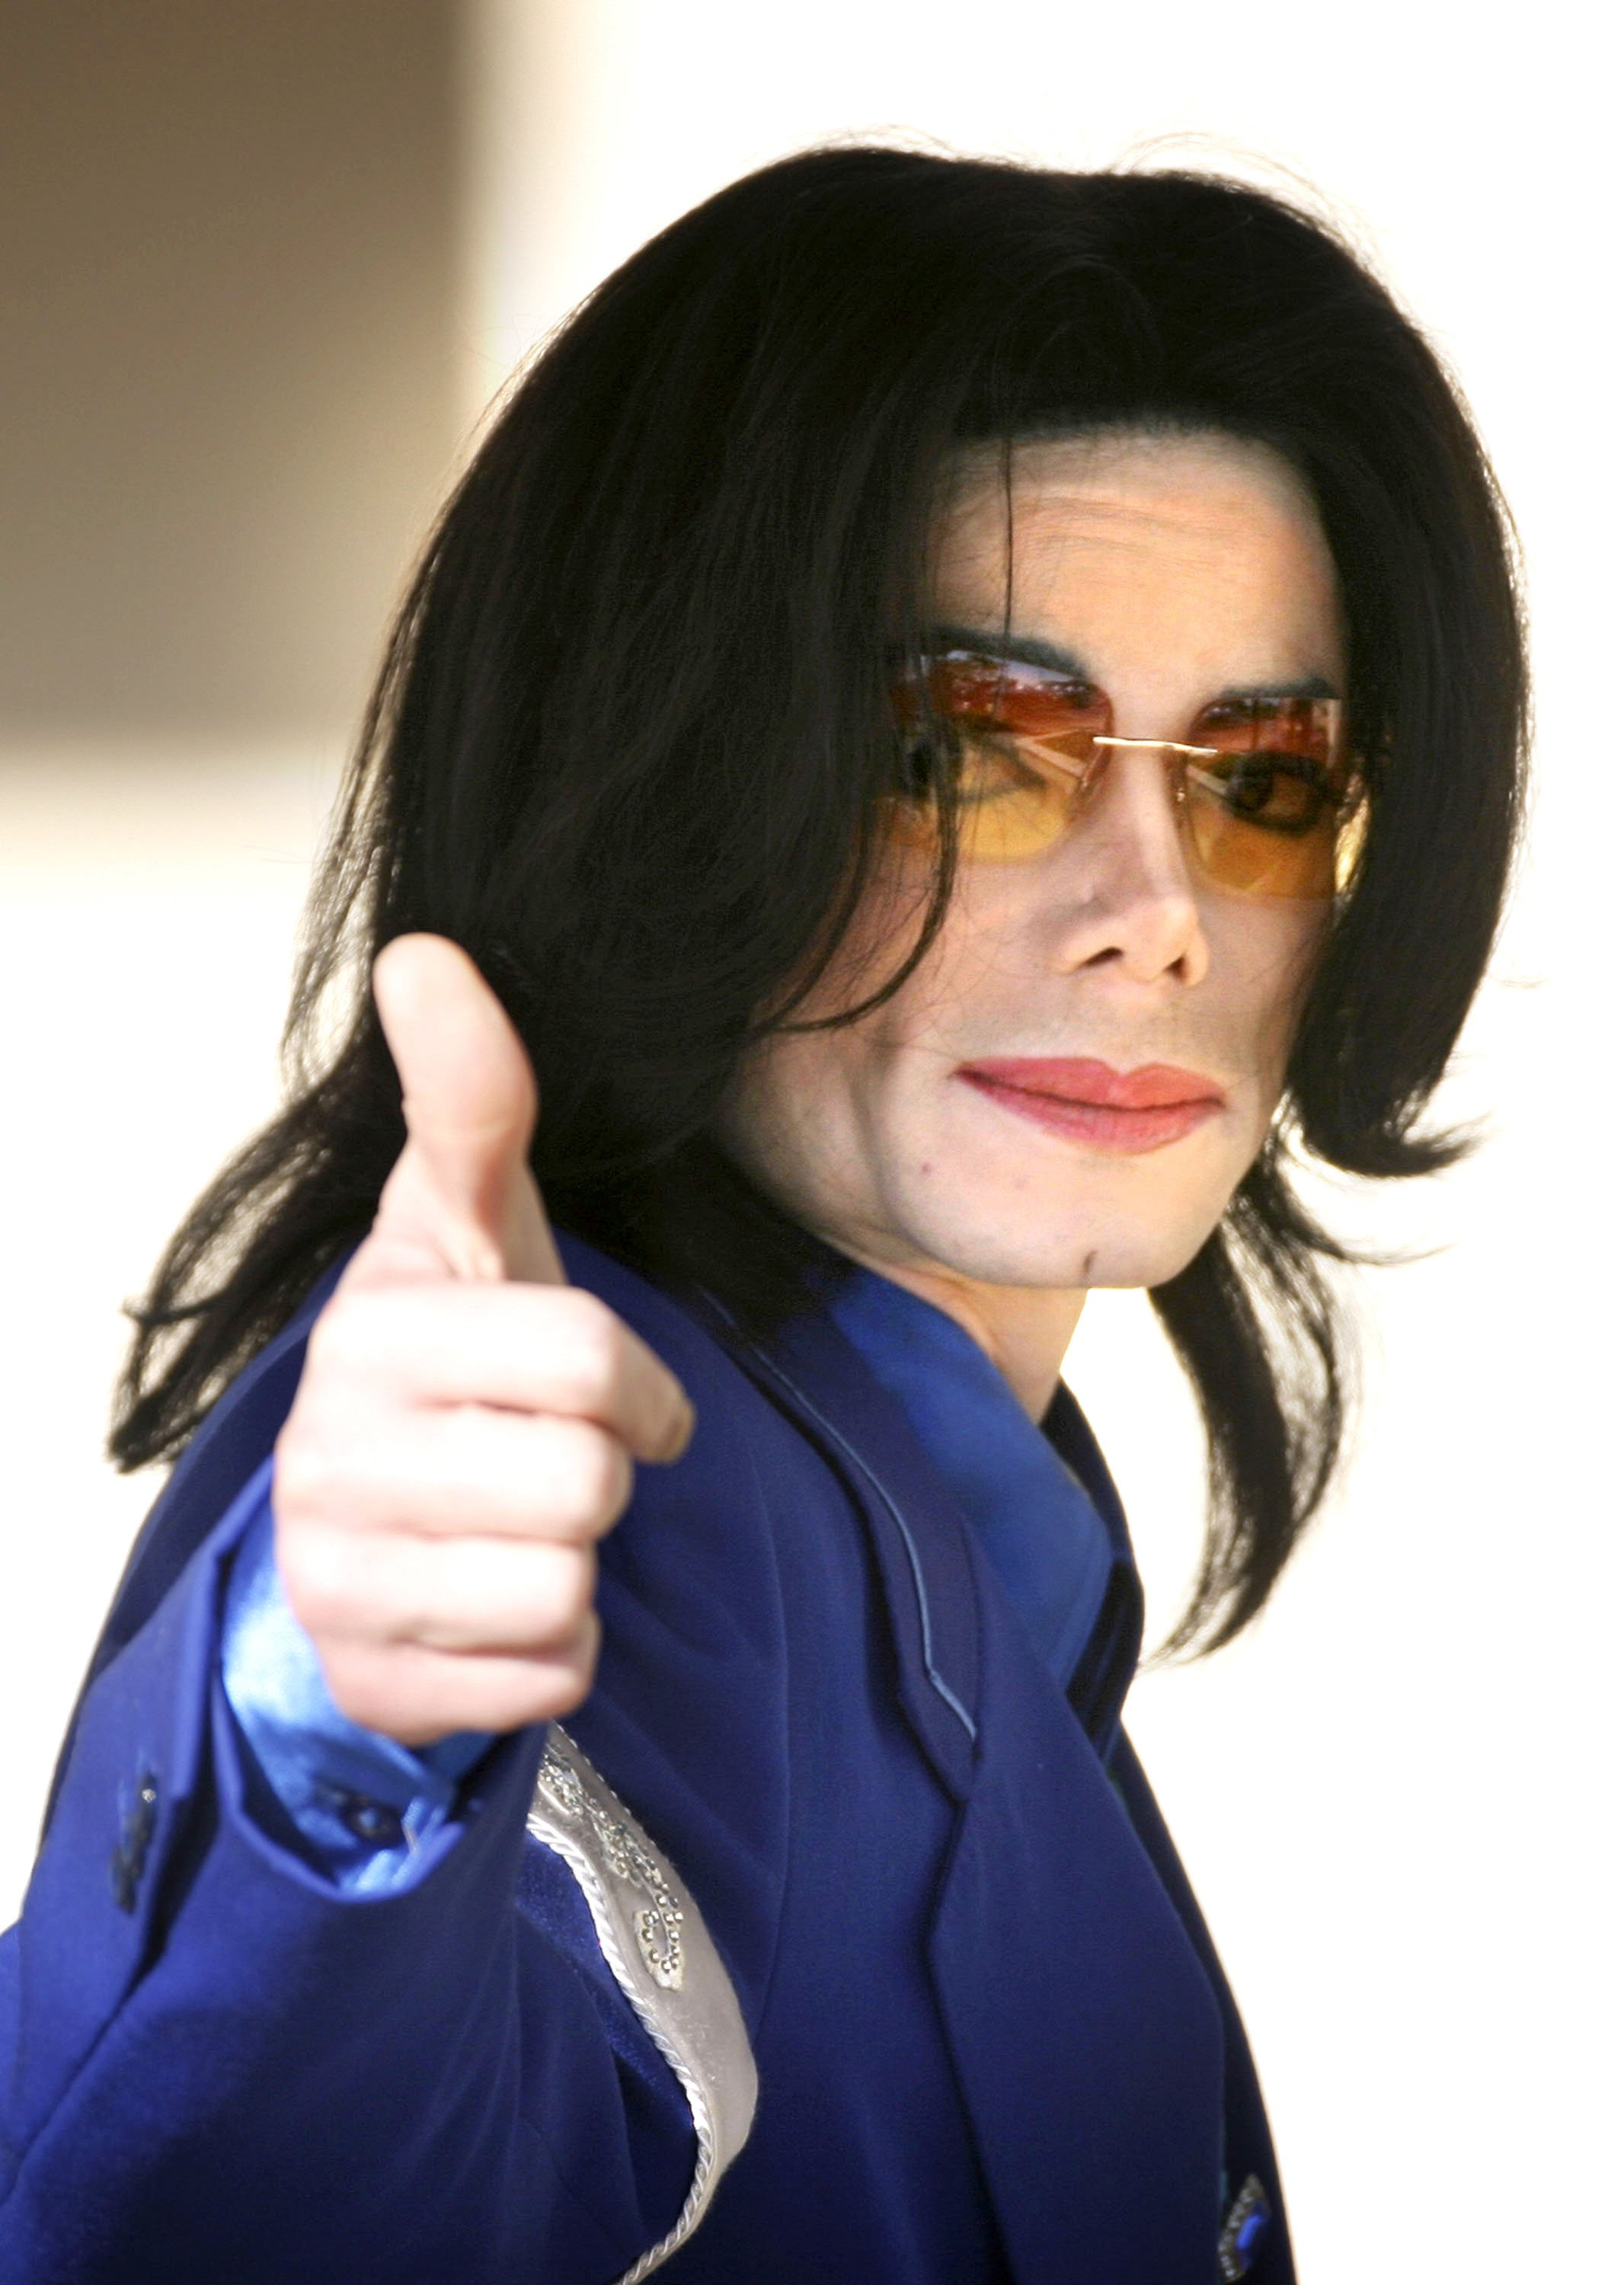 Michael Jackson gestures to fans as he enters the Santa Barbara County Courthouse for his child molestation trial March 16, 2005. | Photo: GettyImages